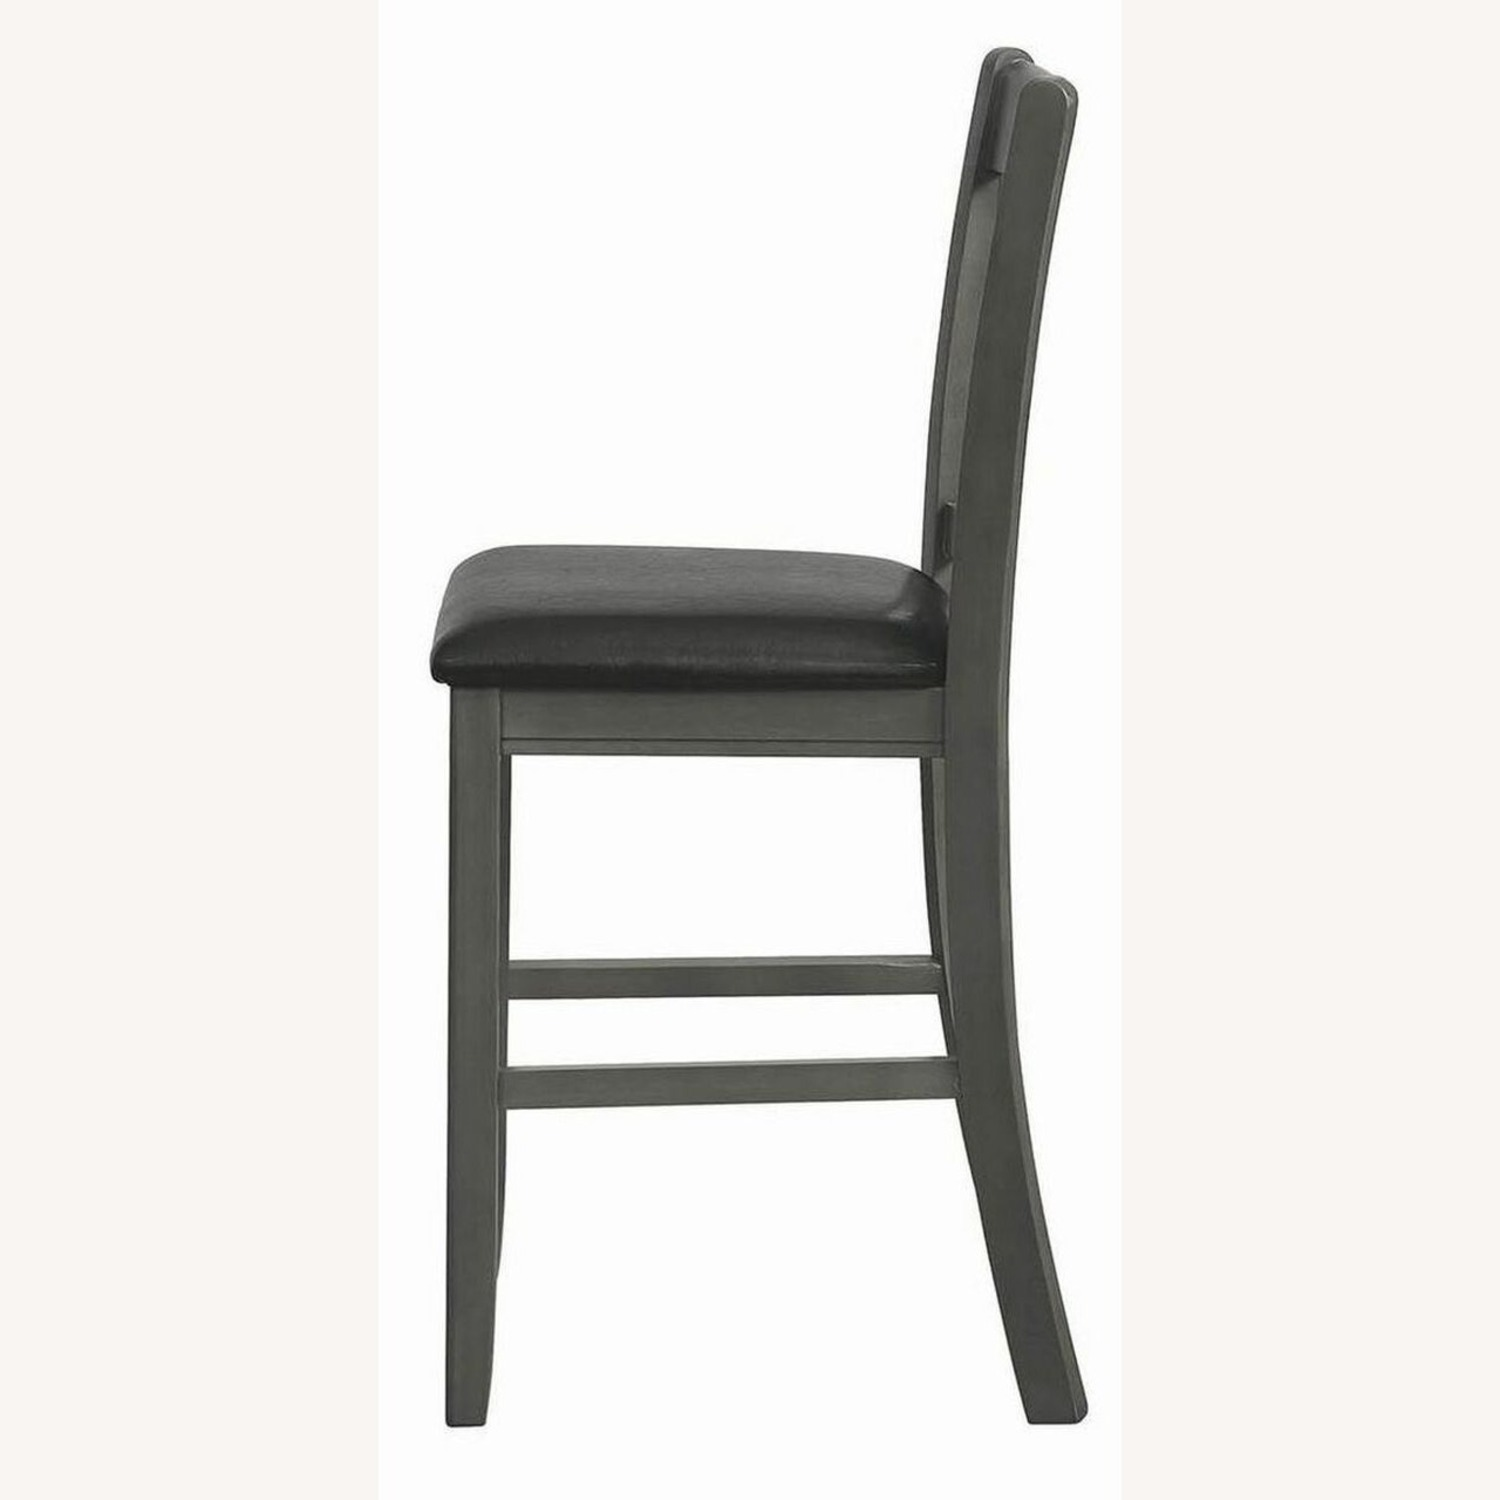 Counter Height Chair In Medium Gray Finish - image-4